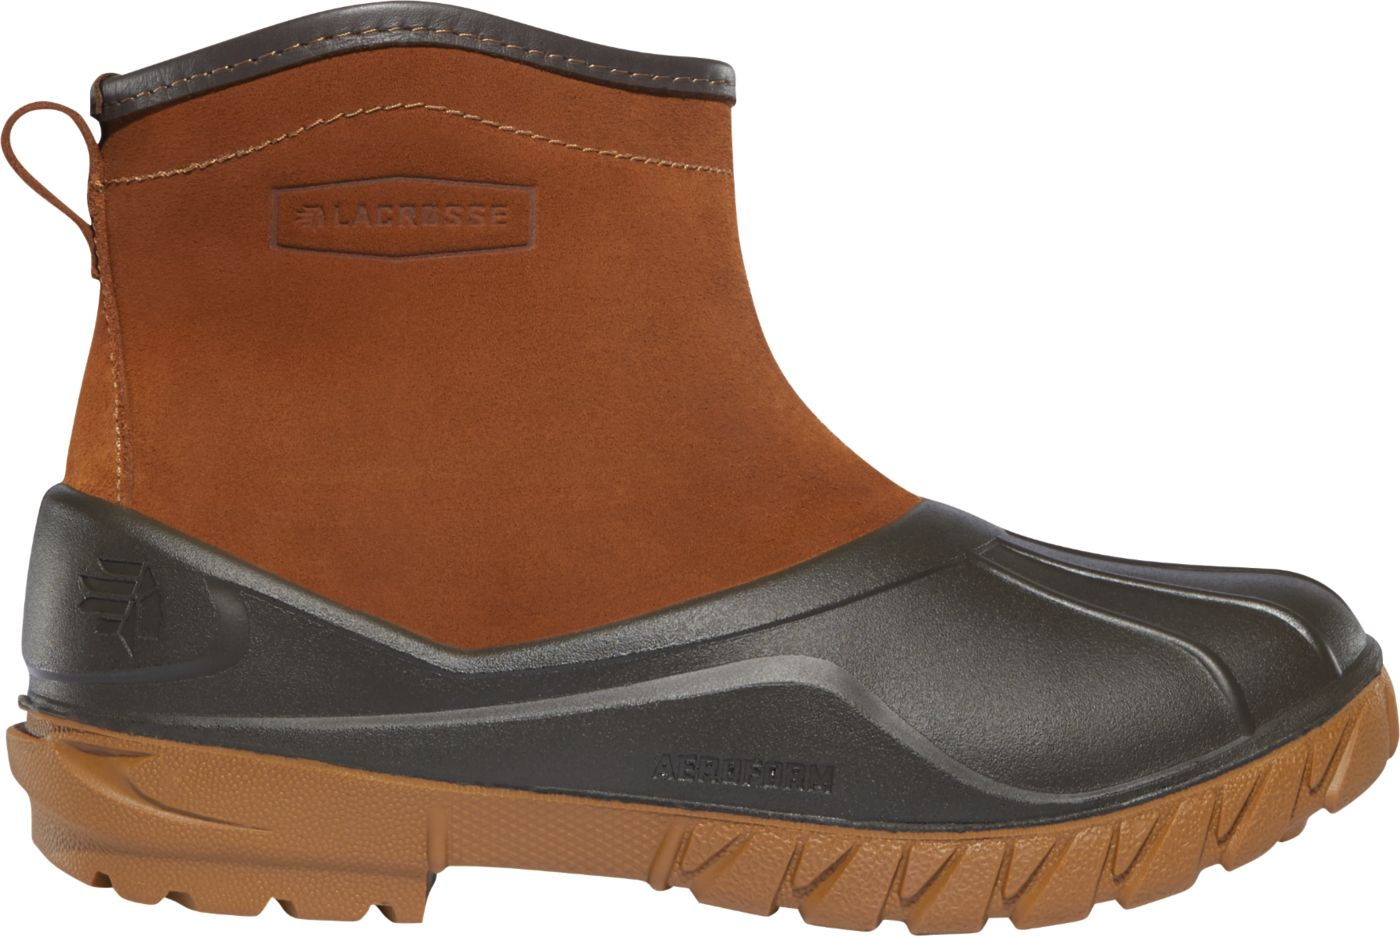 LaCrosse Women's Aero Timber Top Slip-On 5'' Hunting Boots